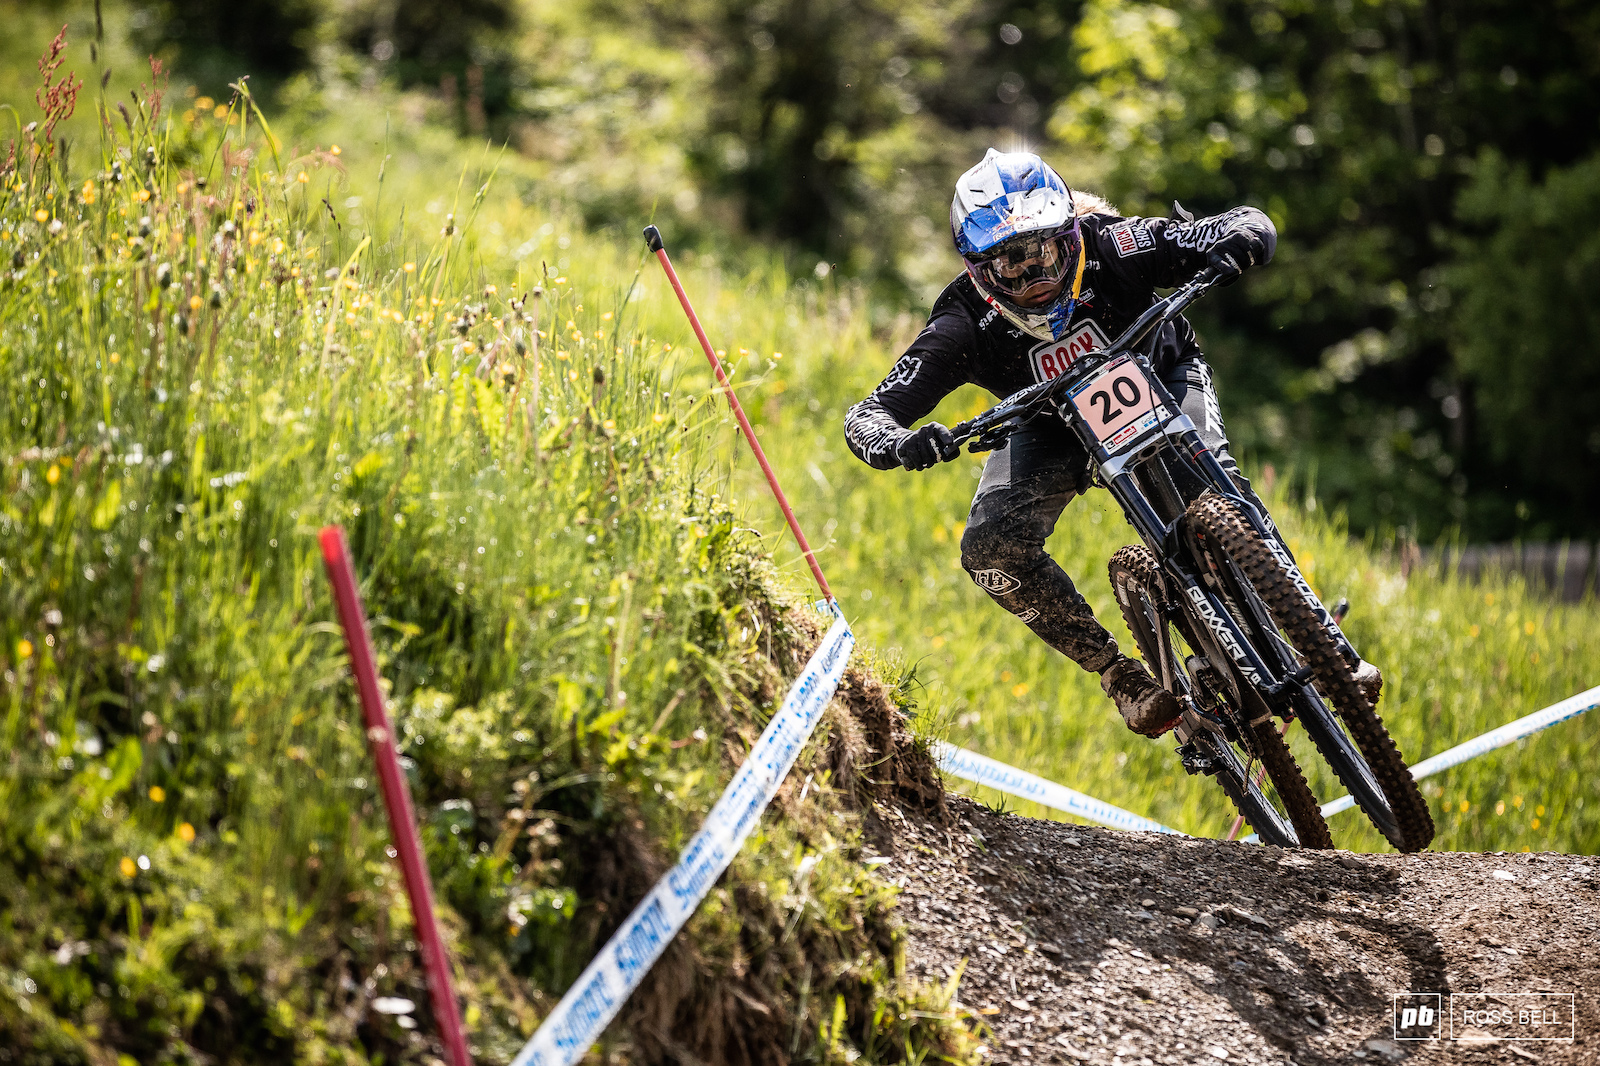 Vali H ll will be seeking redemption for last years crash and the disappointment of missing out on World Champs.